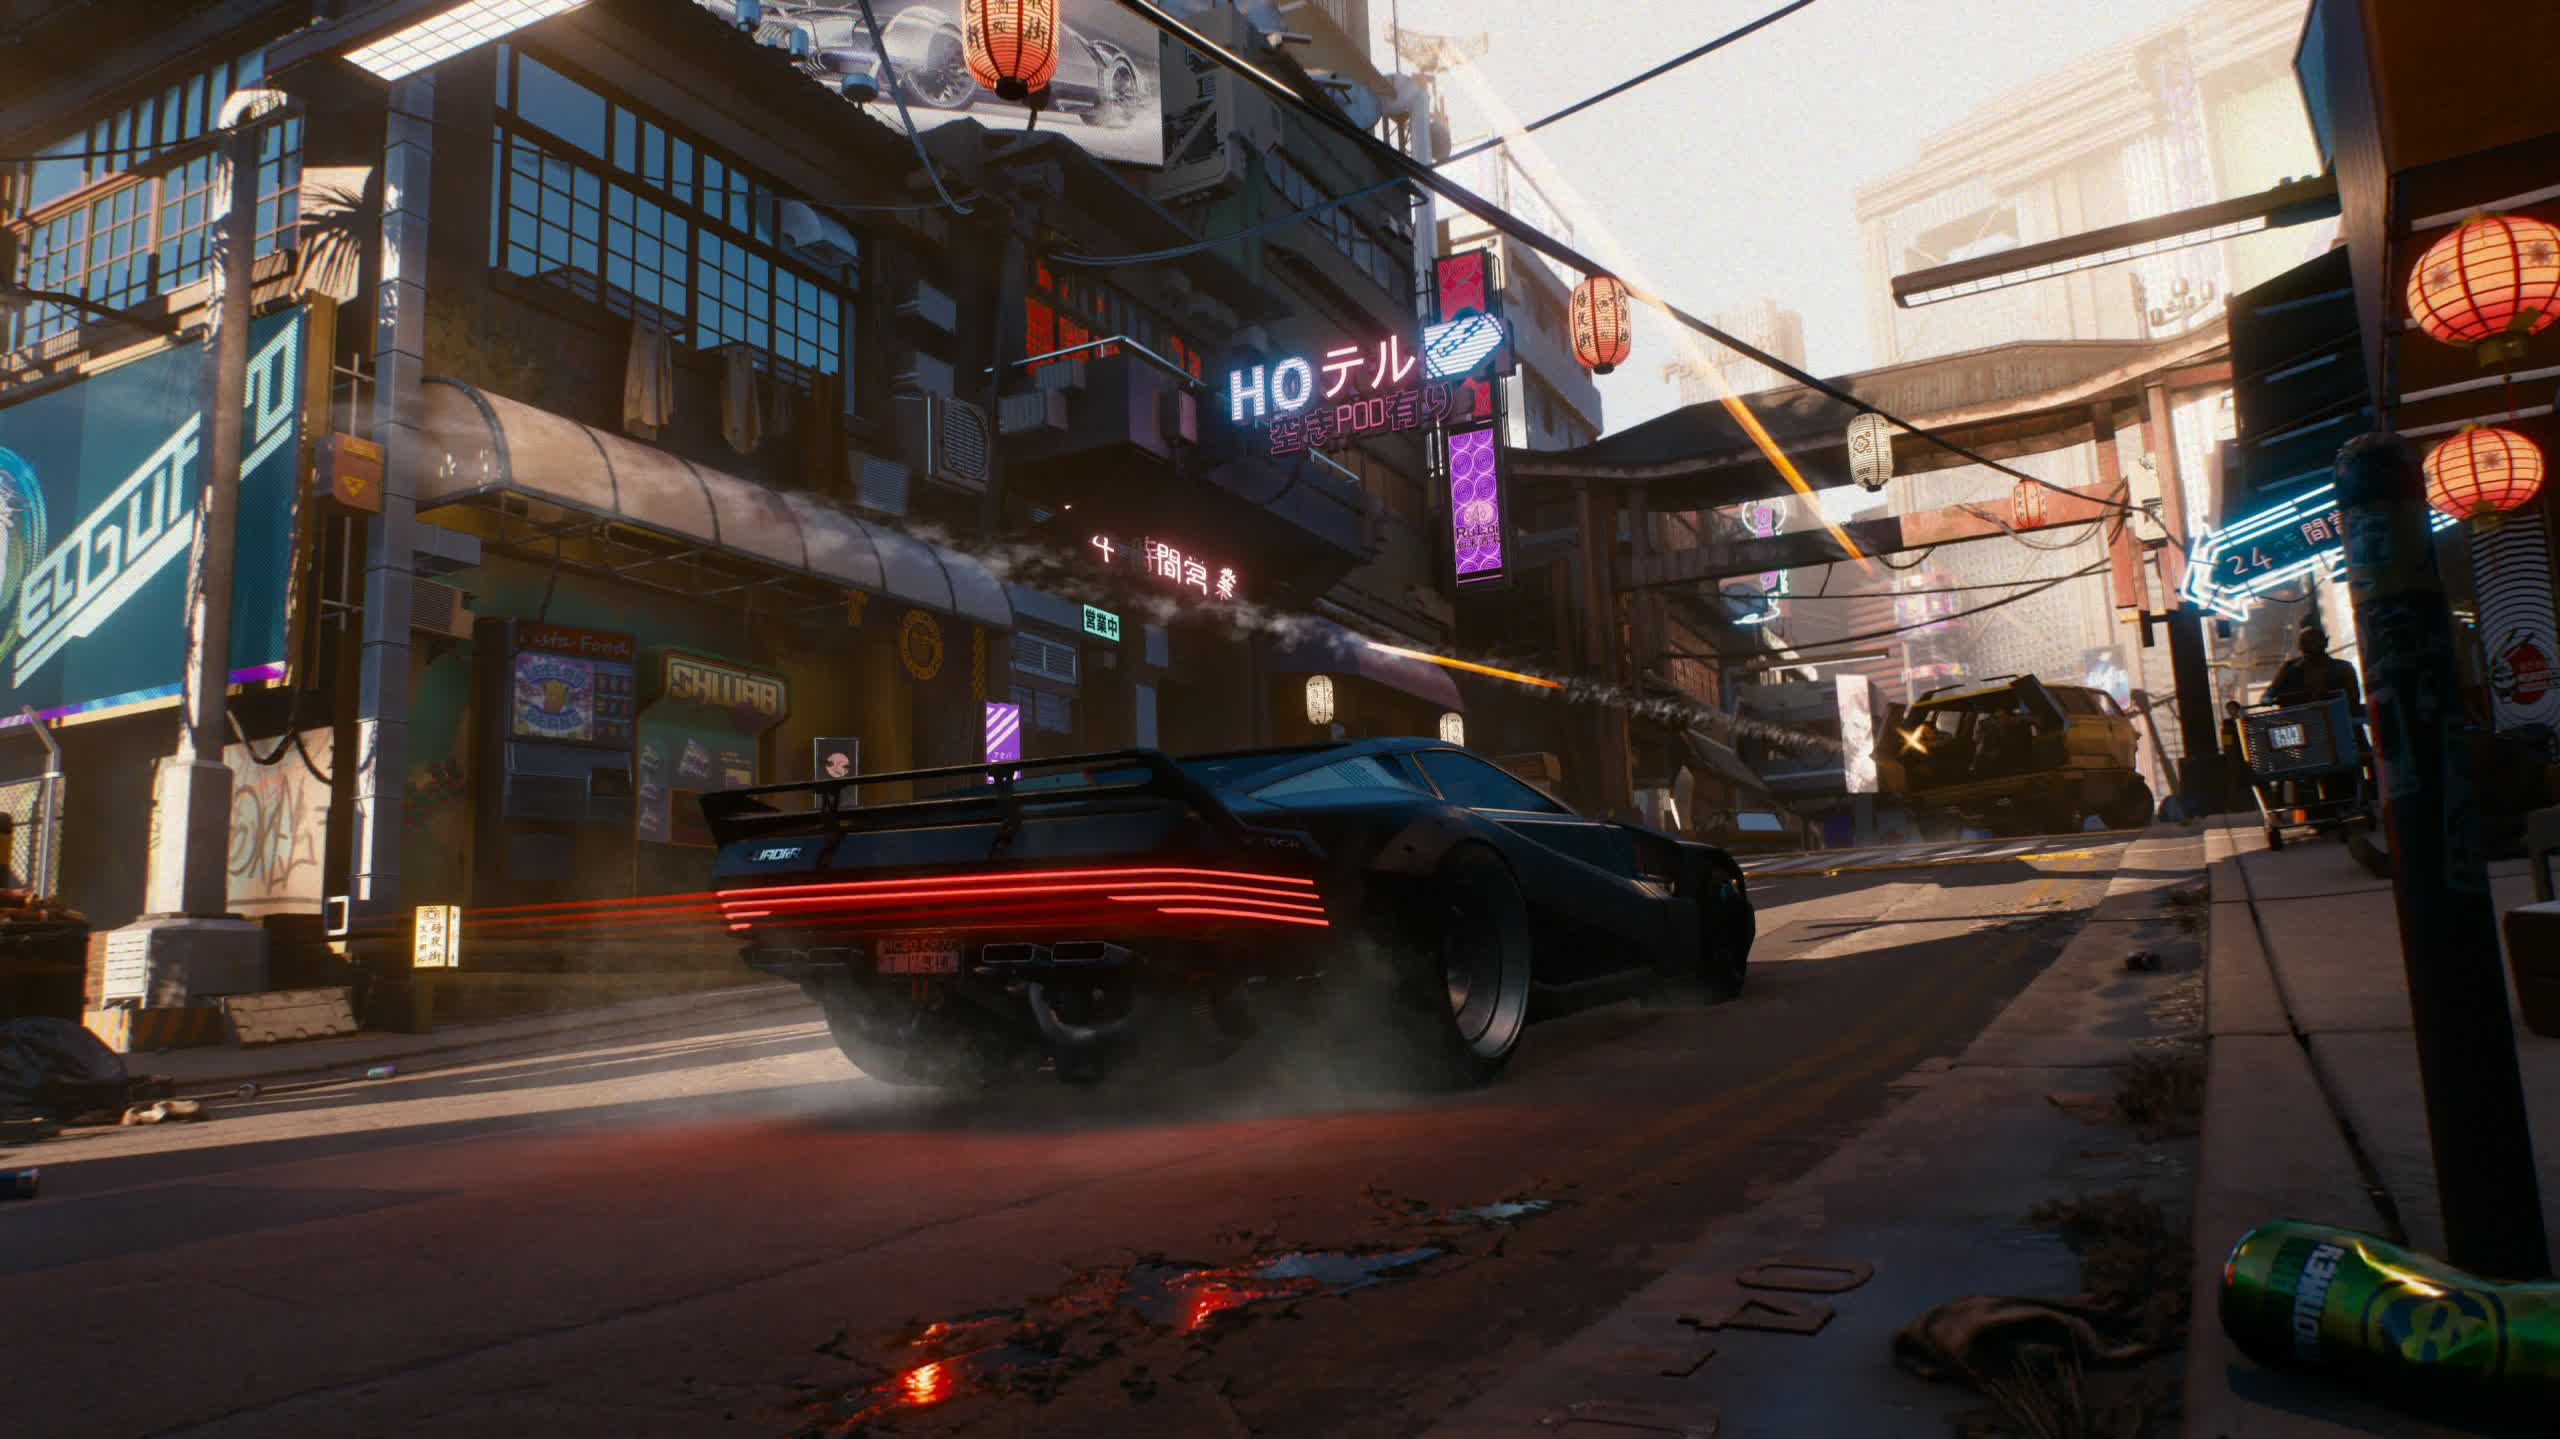 CD Projekt Red slapped with class action lawsuit over buggy Cyberpunk 2077 launch – TechSpot